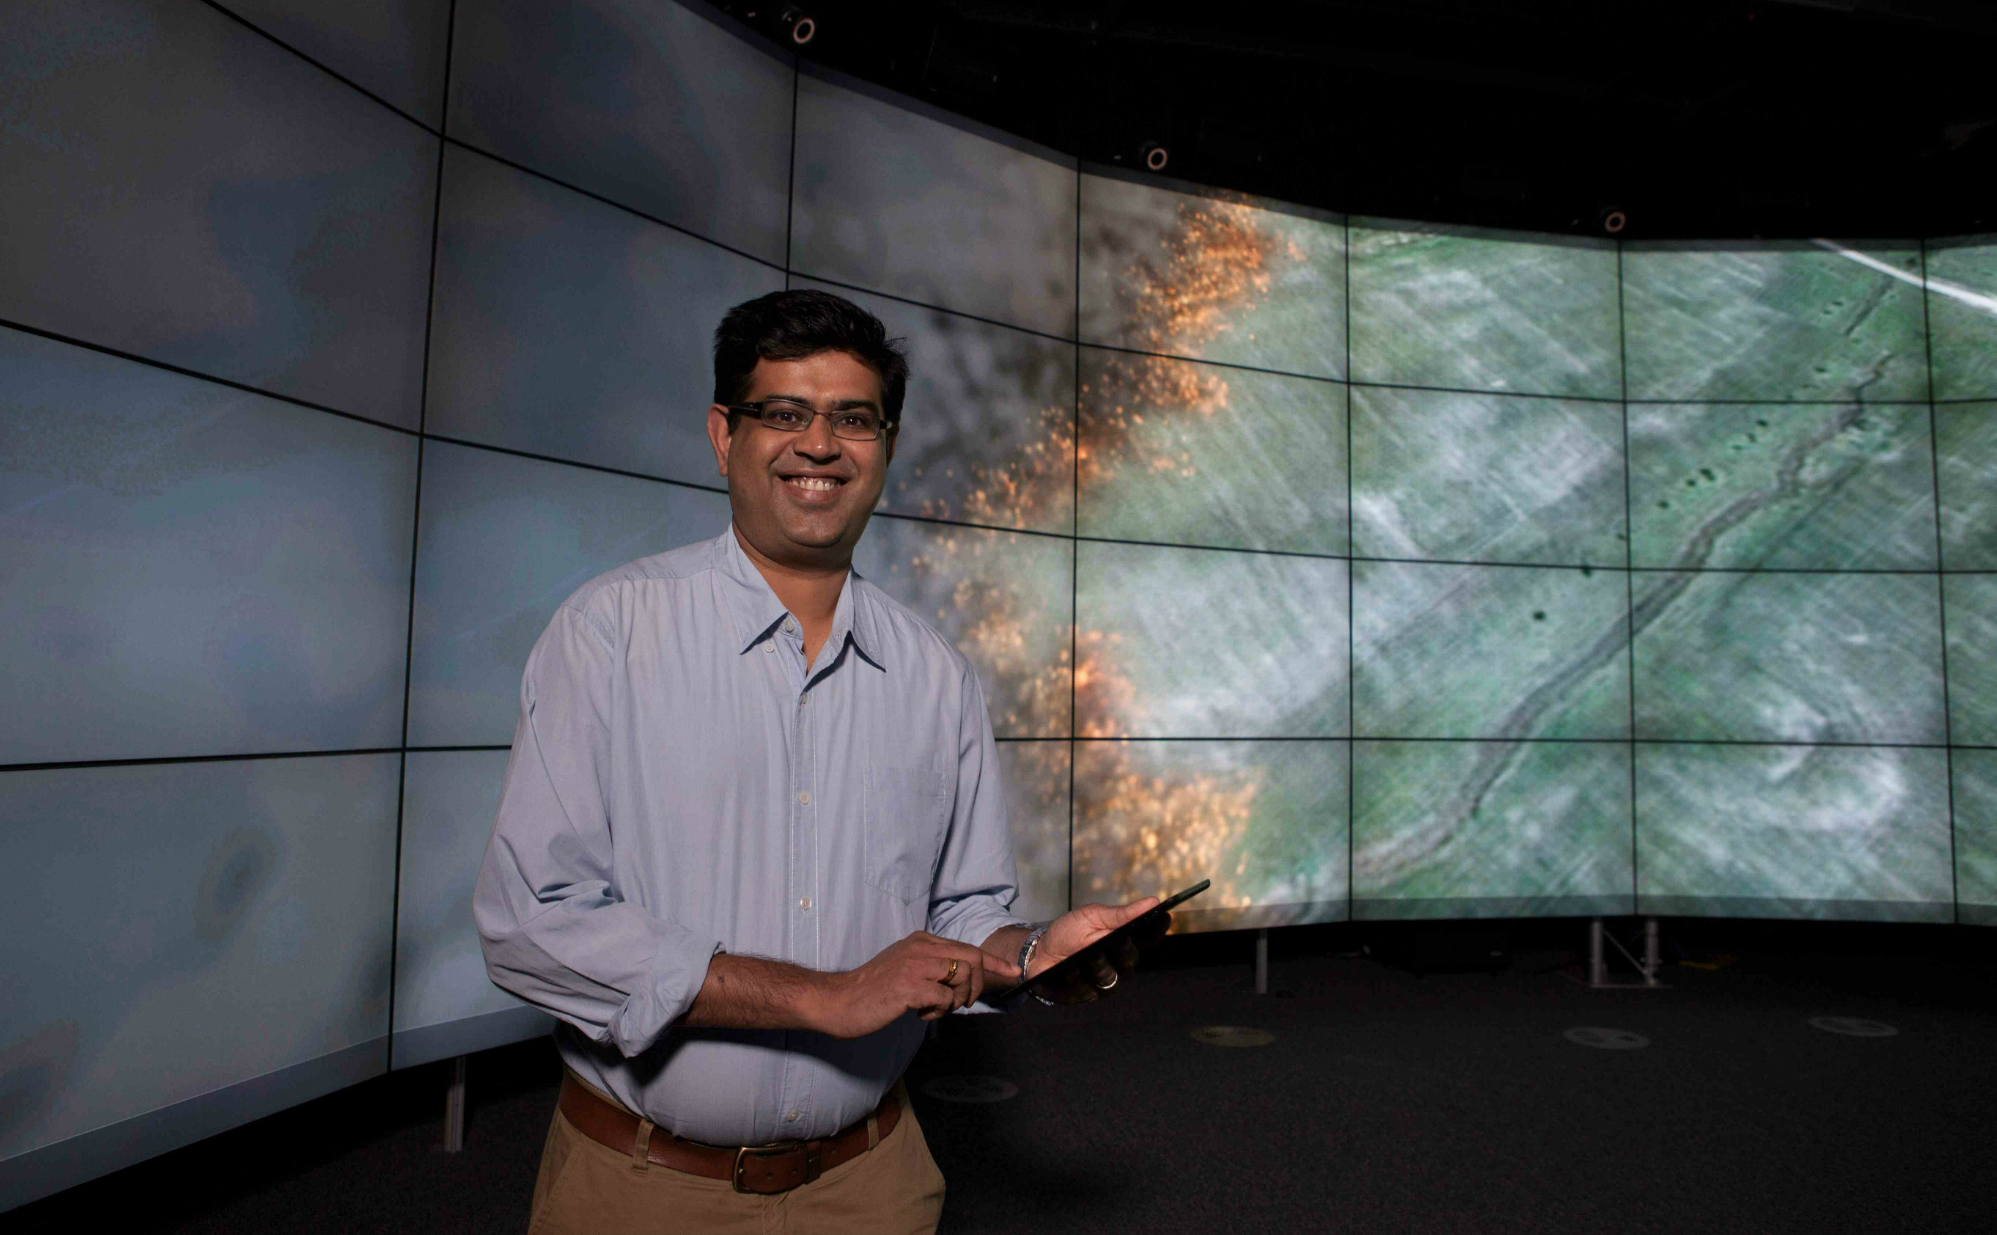 Dr Mahaesh Prakash stands beside a large screen displaying the Spark bushfire modelling tool.